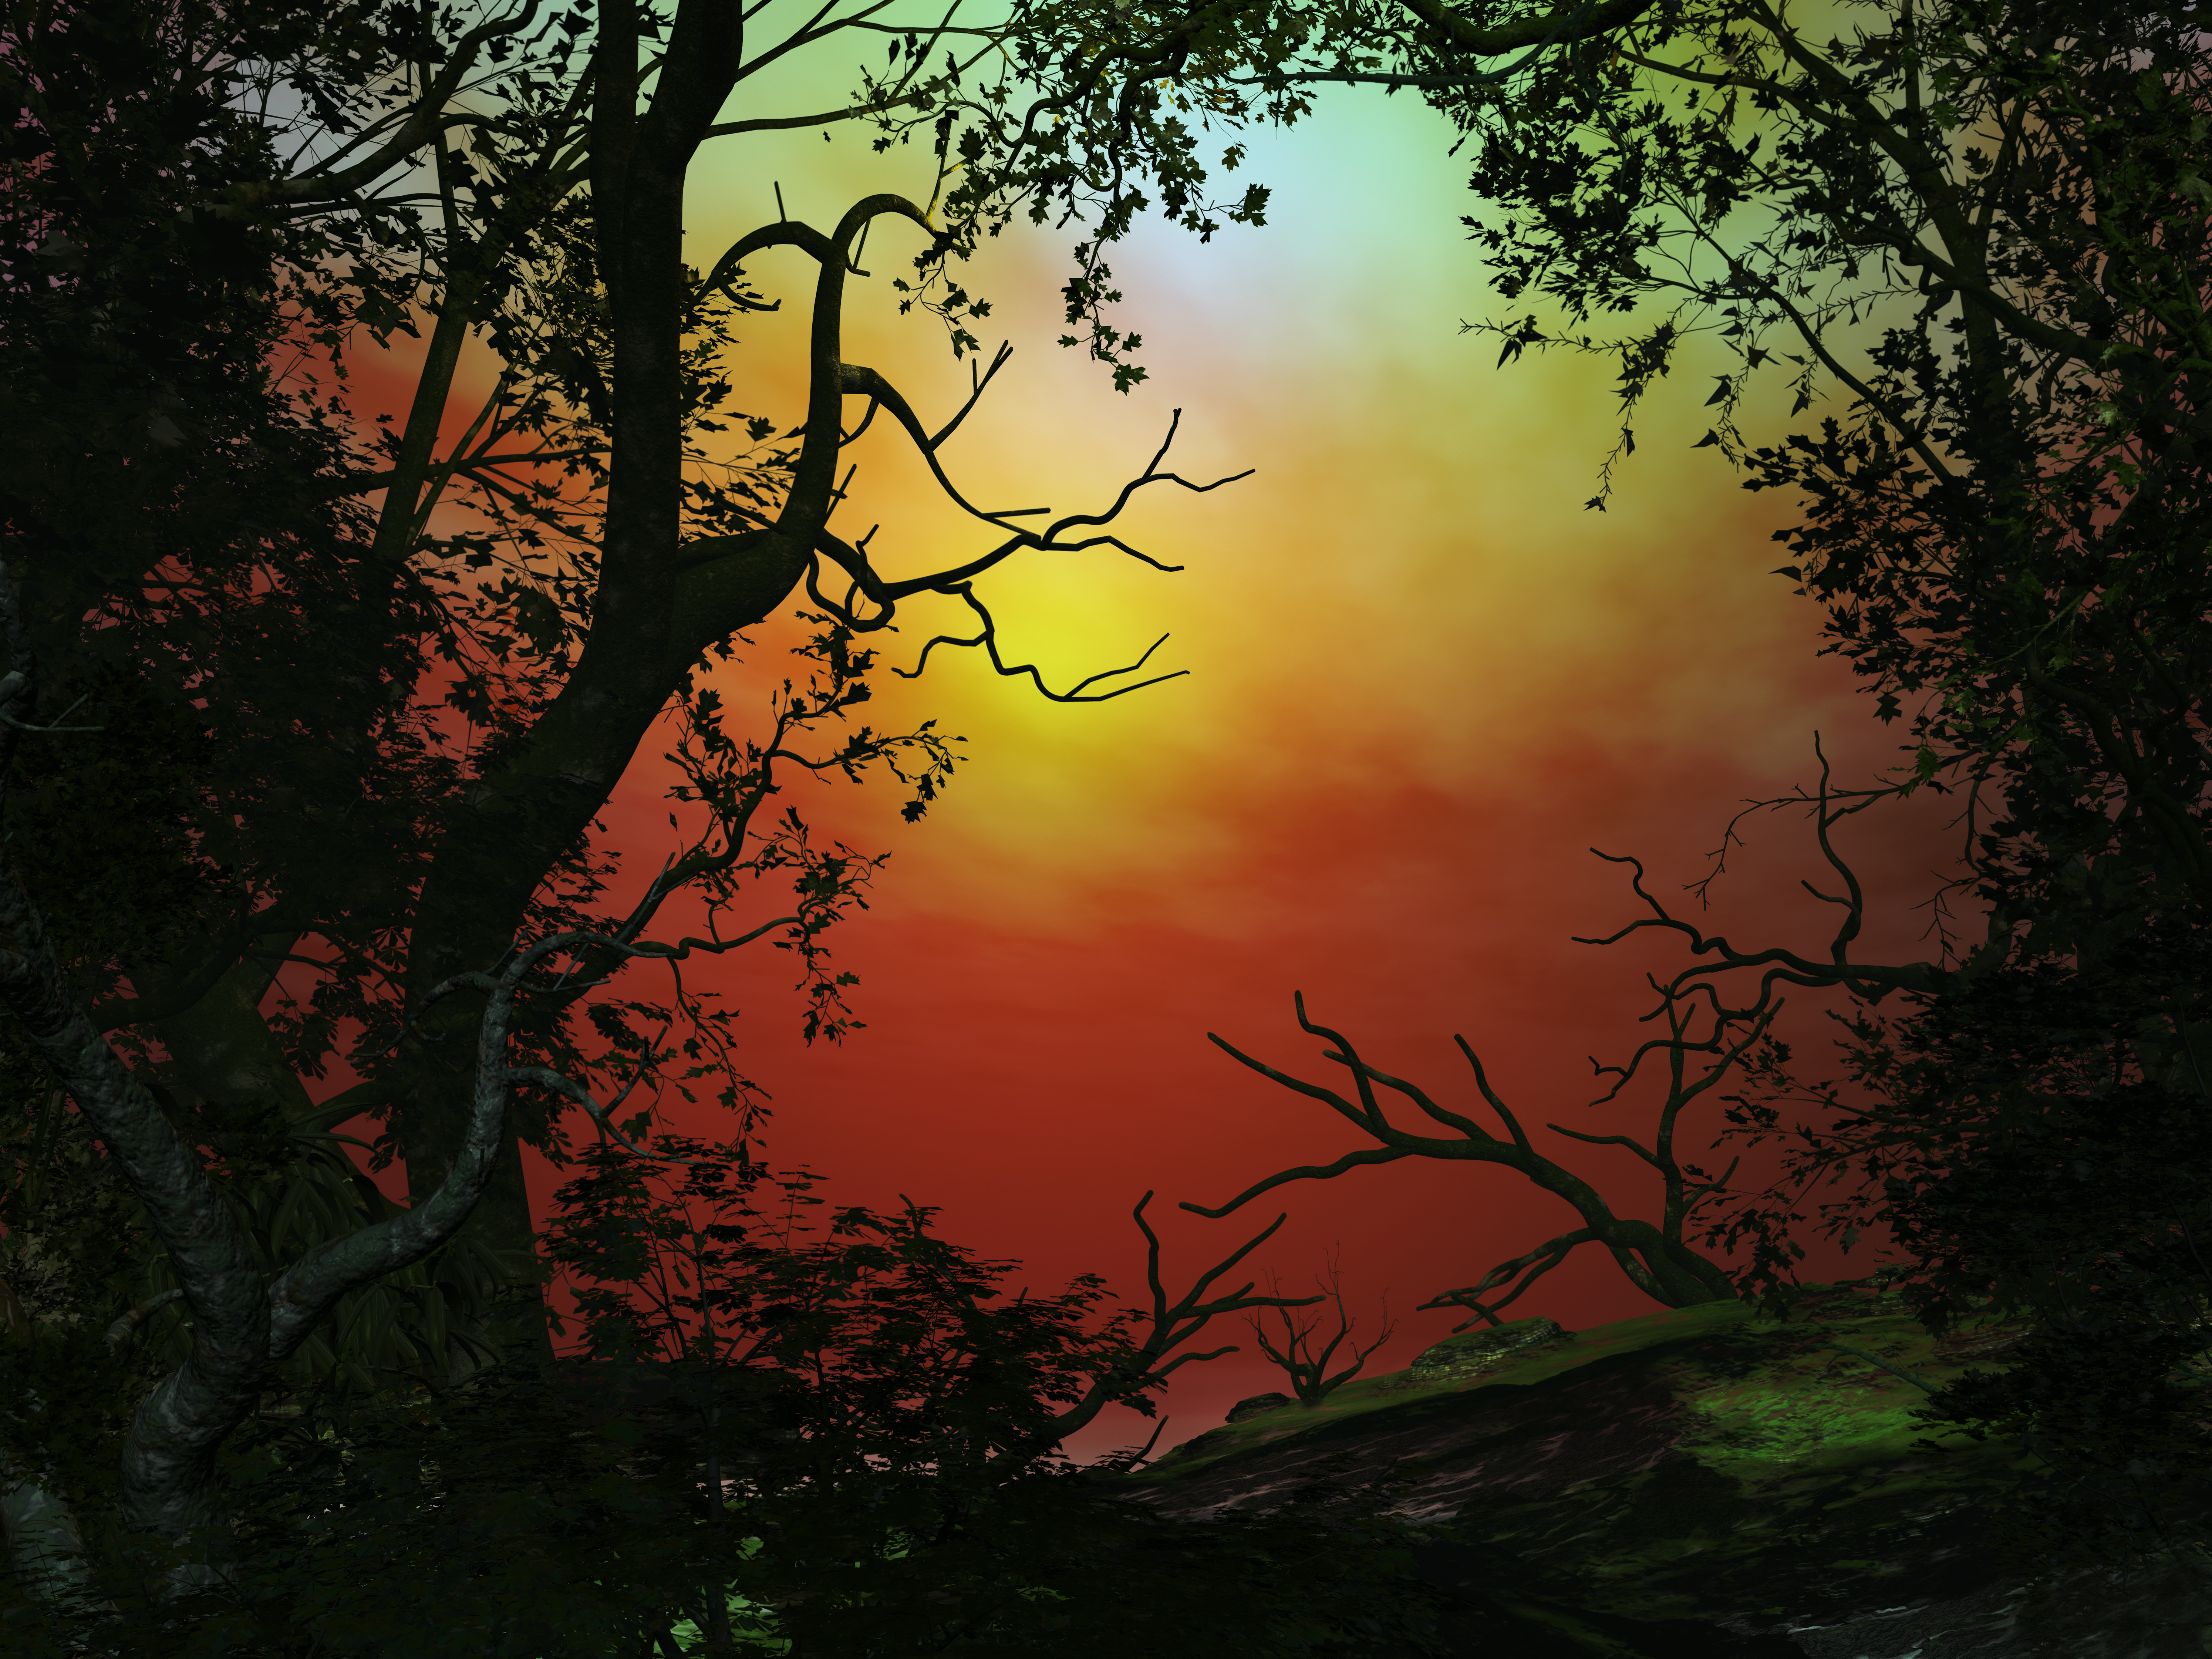 Sunset in the Woods